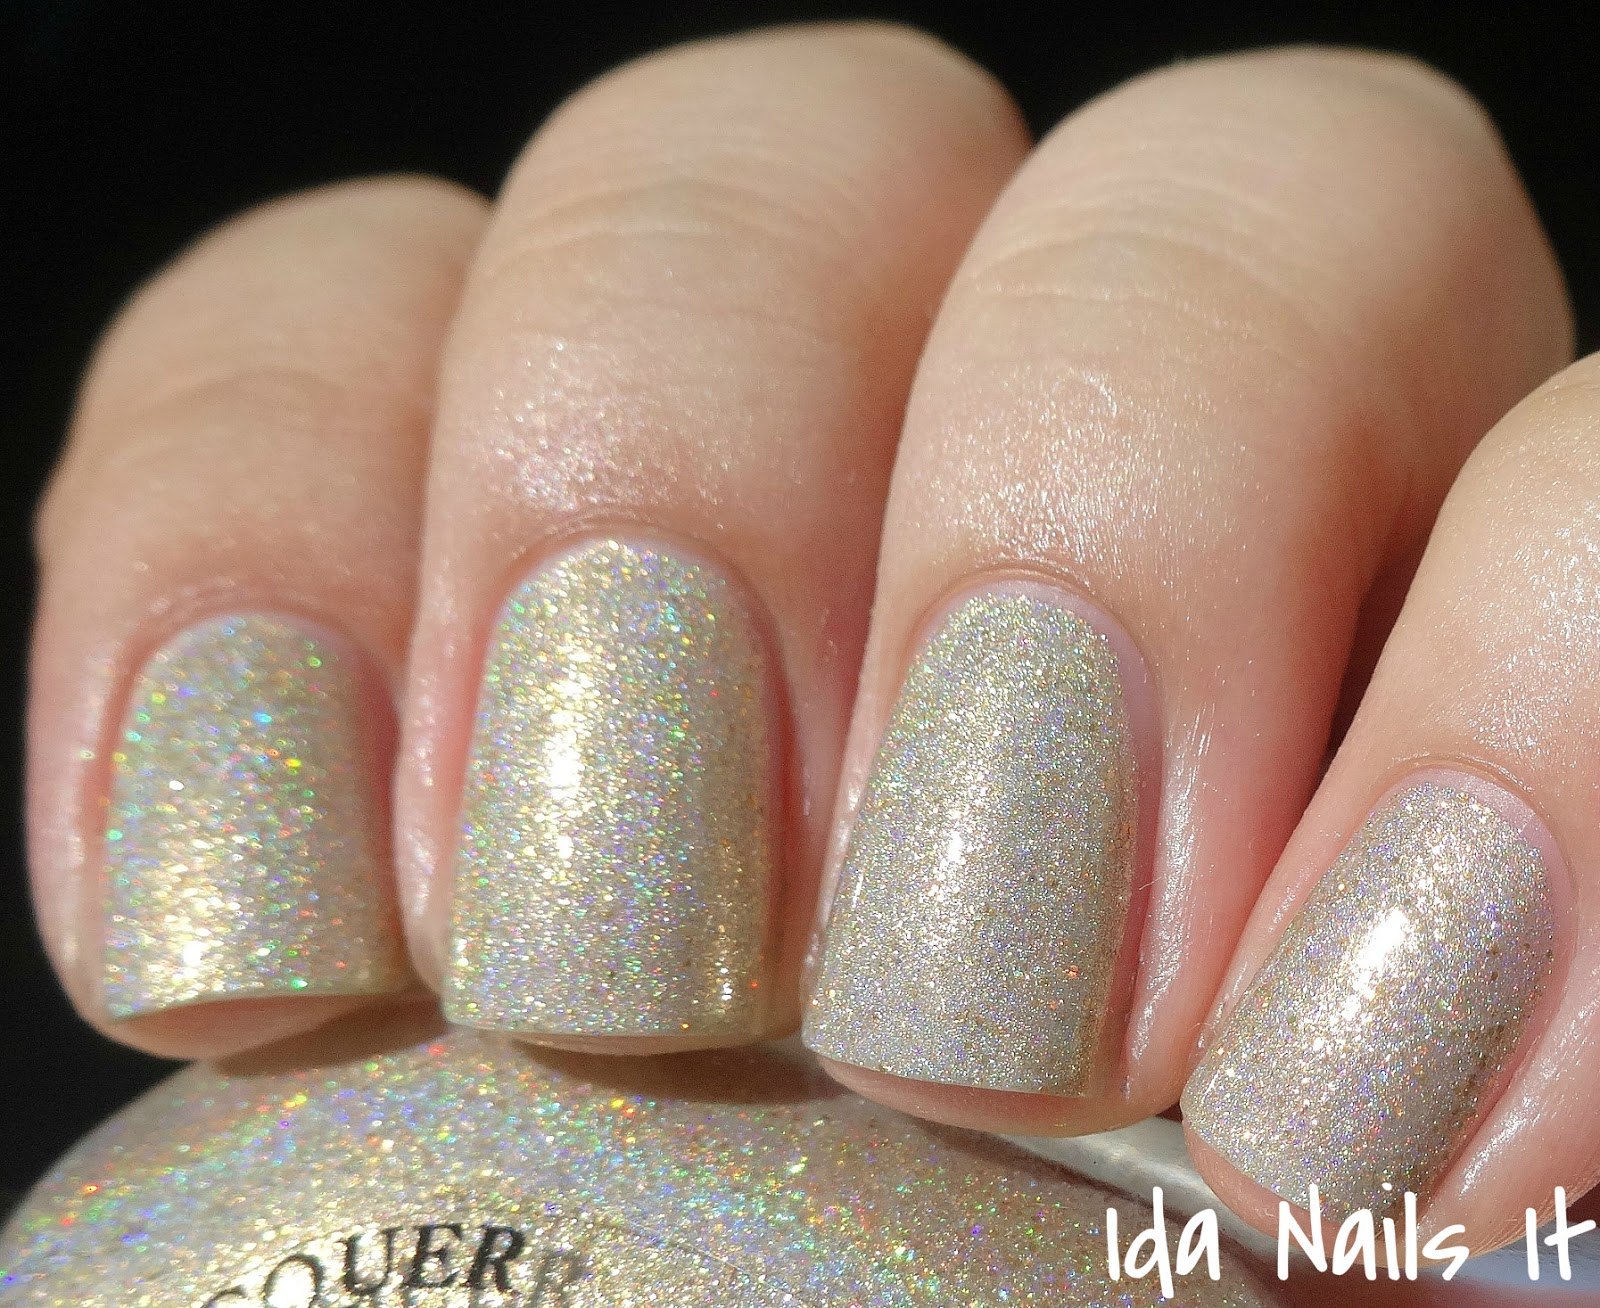 Ida Nails It: Black Dahlia Lacquer Holo Petals Collection: Swatches ...